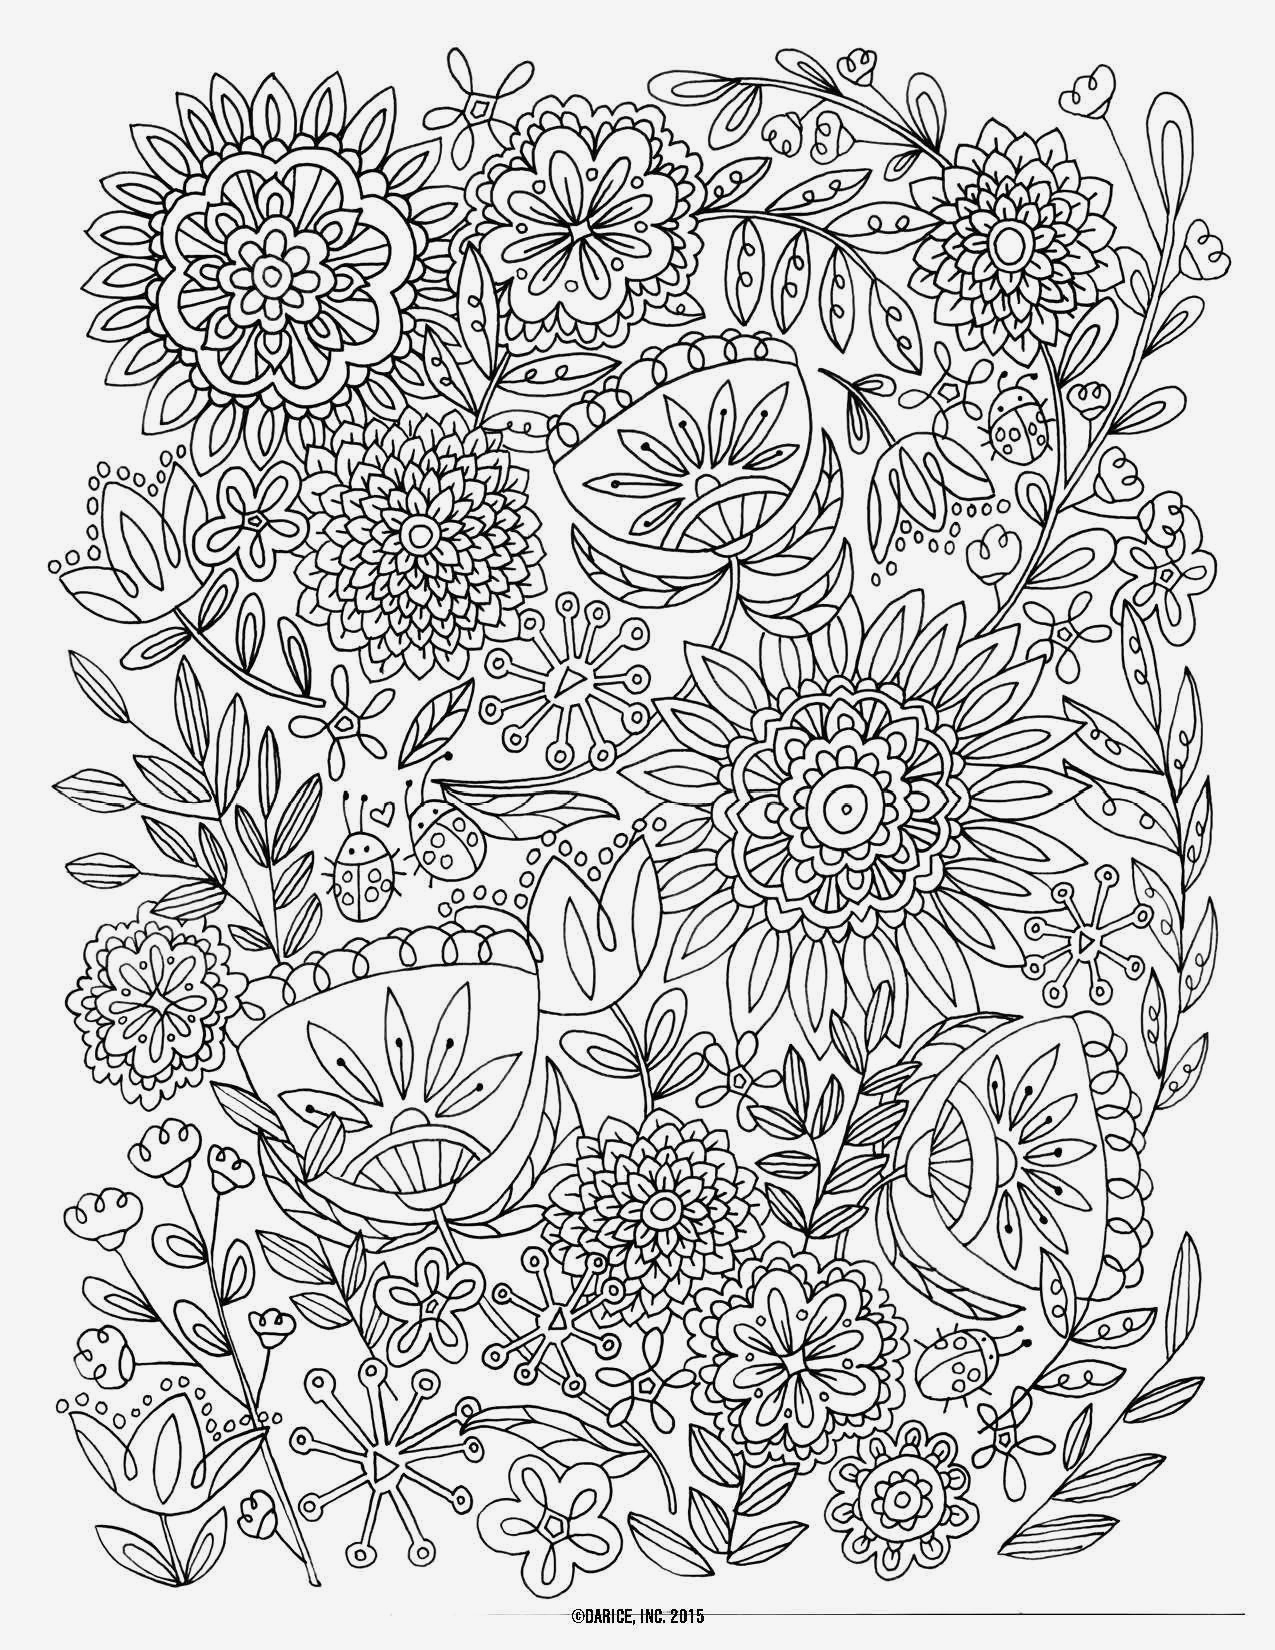 catcher coloring pages Download-Mlb Coloring Pages Printable Coloring Pages Flag Coloring Pages to Print 3-l